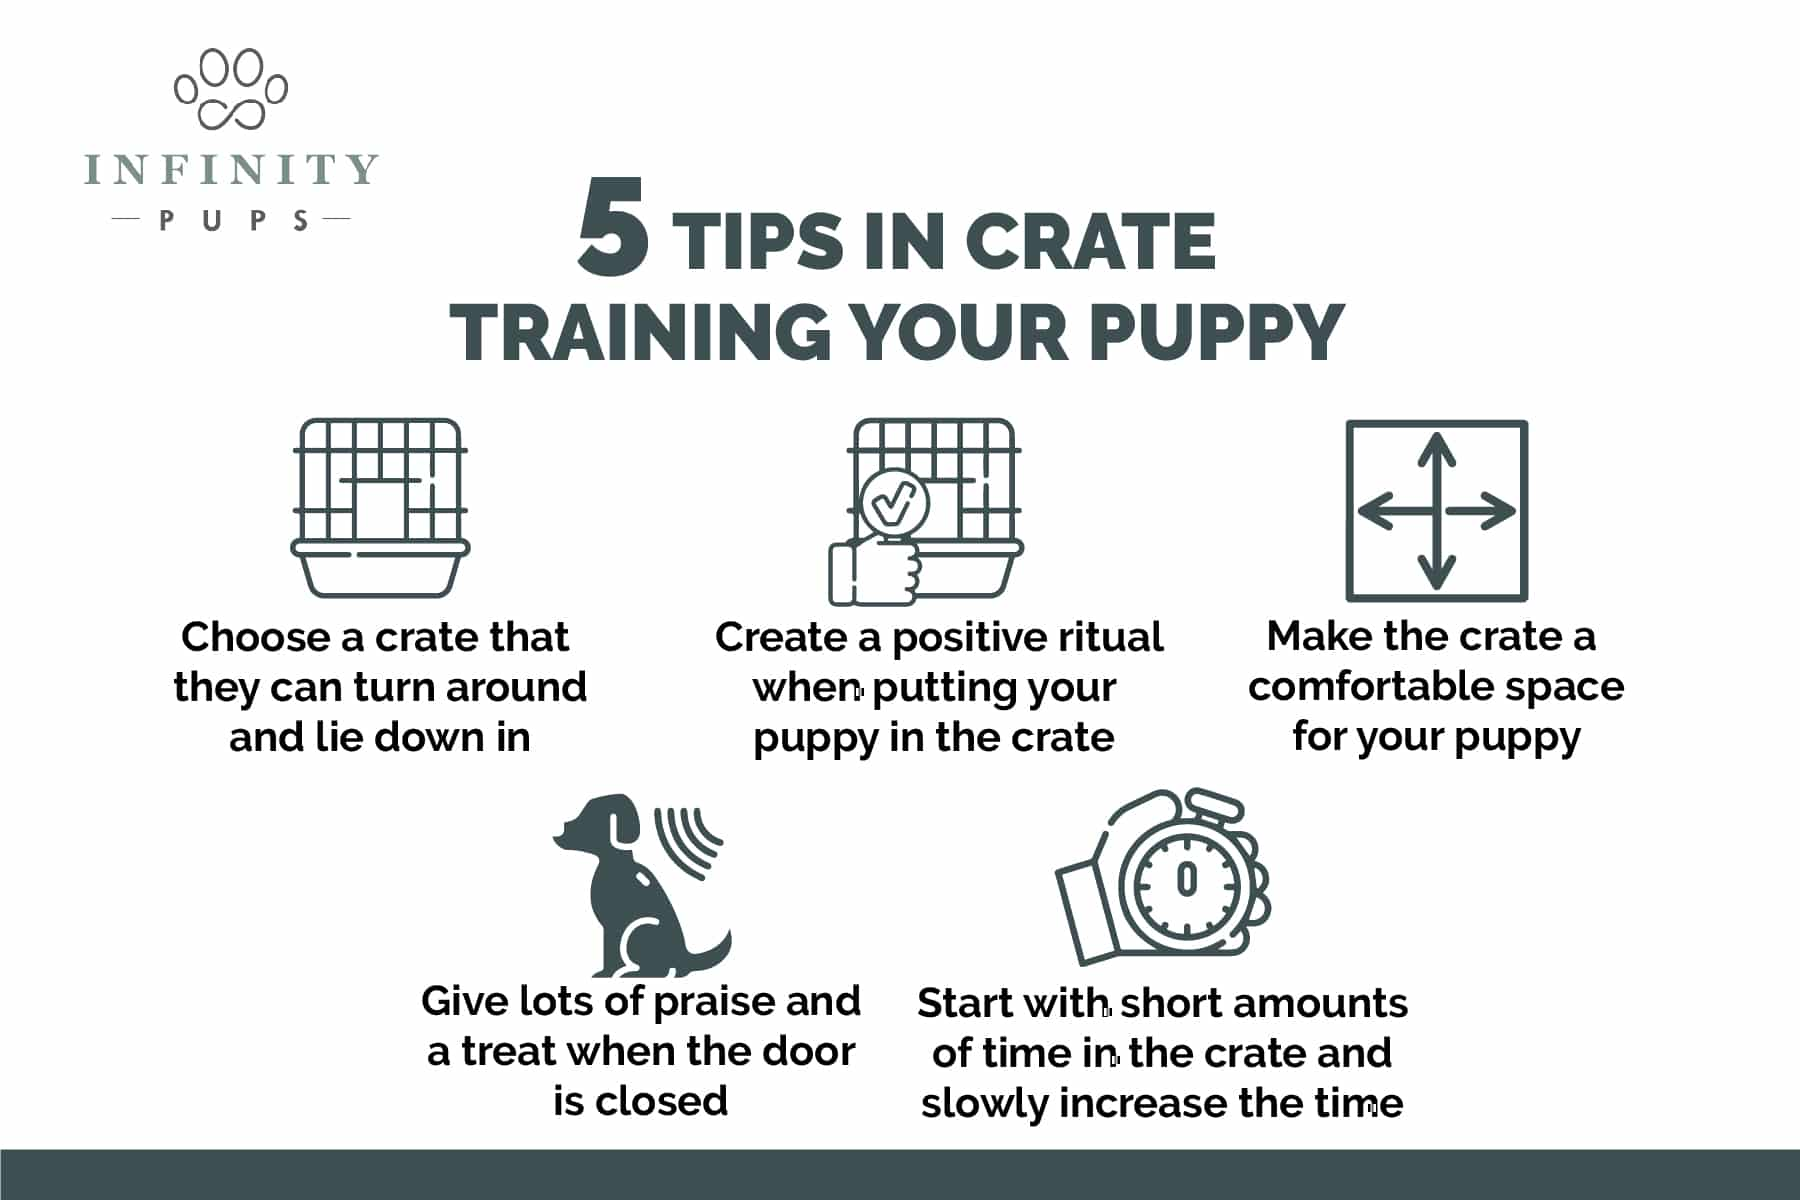 5 tips to crate training your puppy